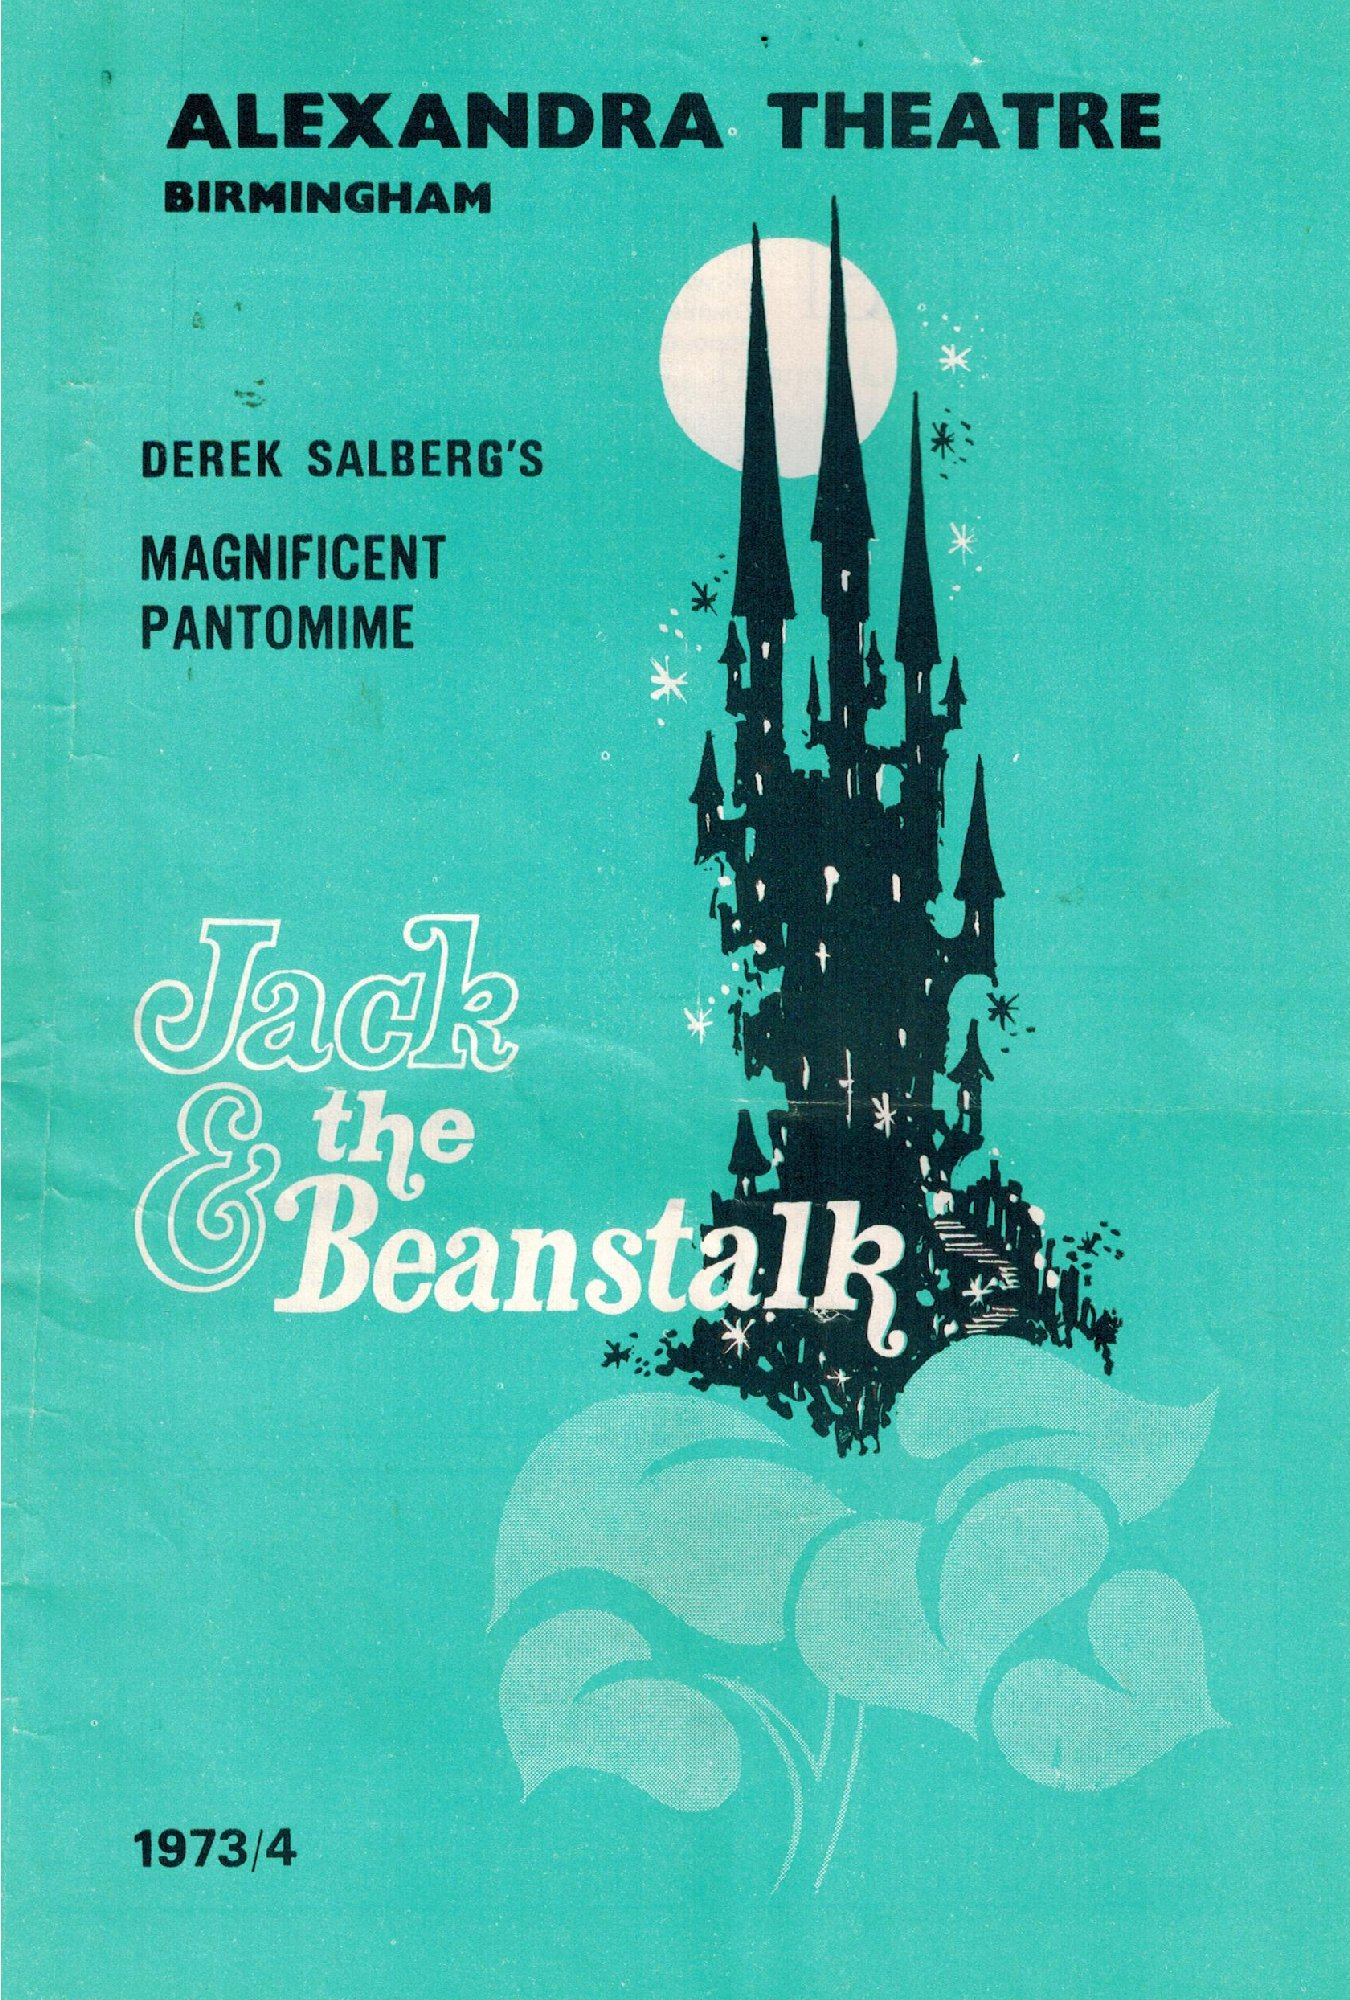 O141a_Alexandra-Theatre_[Jack-and-the-Beanstalk]1973-74